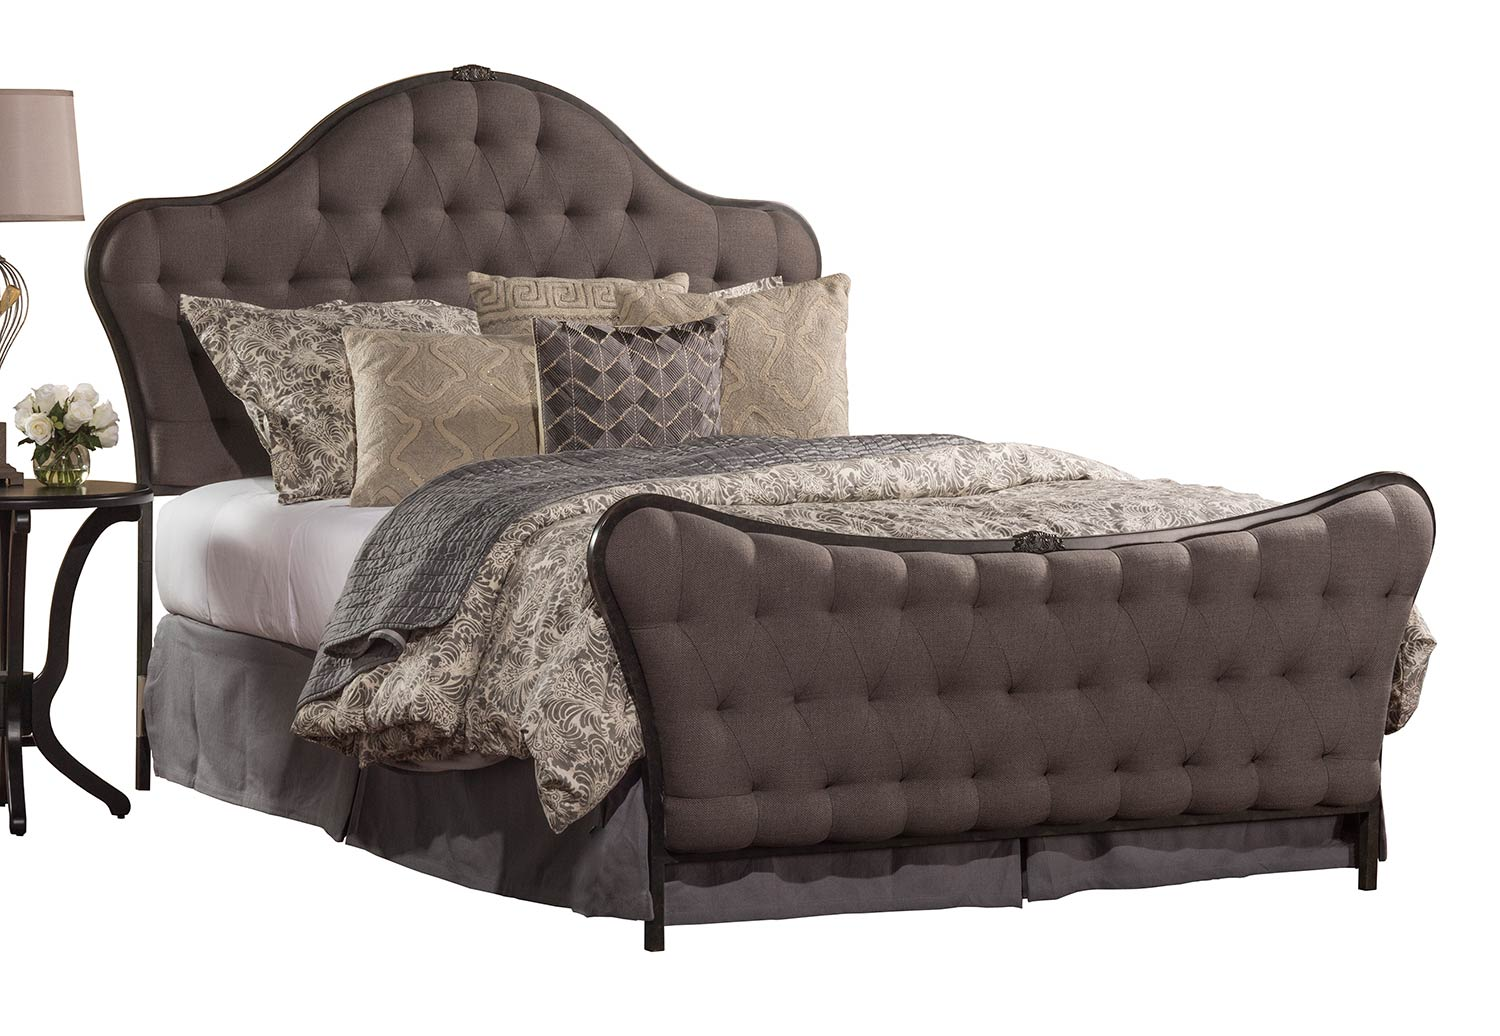 Hillsdale Jefferson Queen Size Bed - Old Black